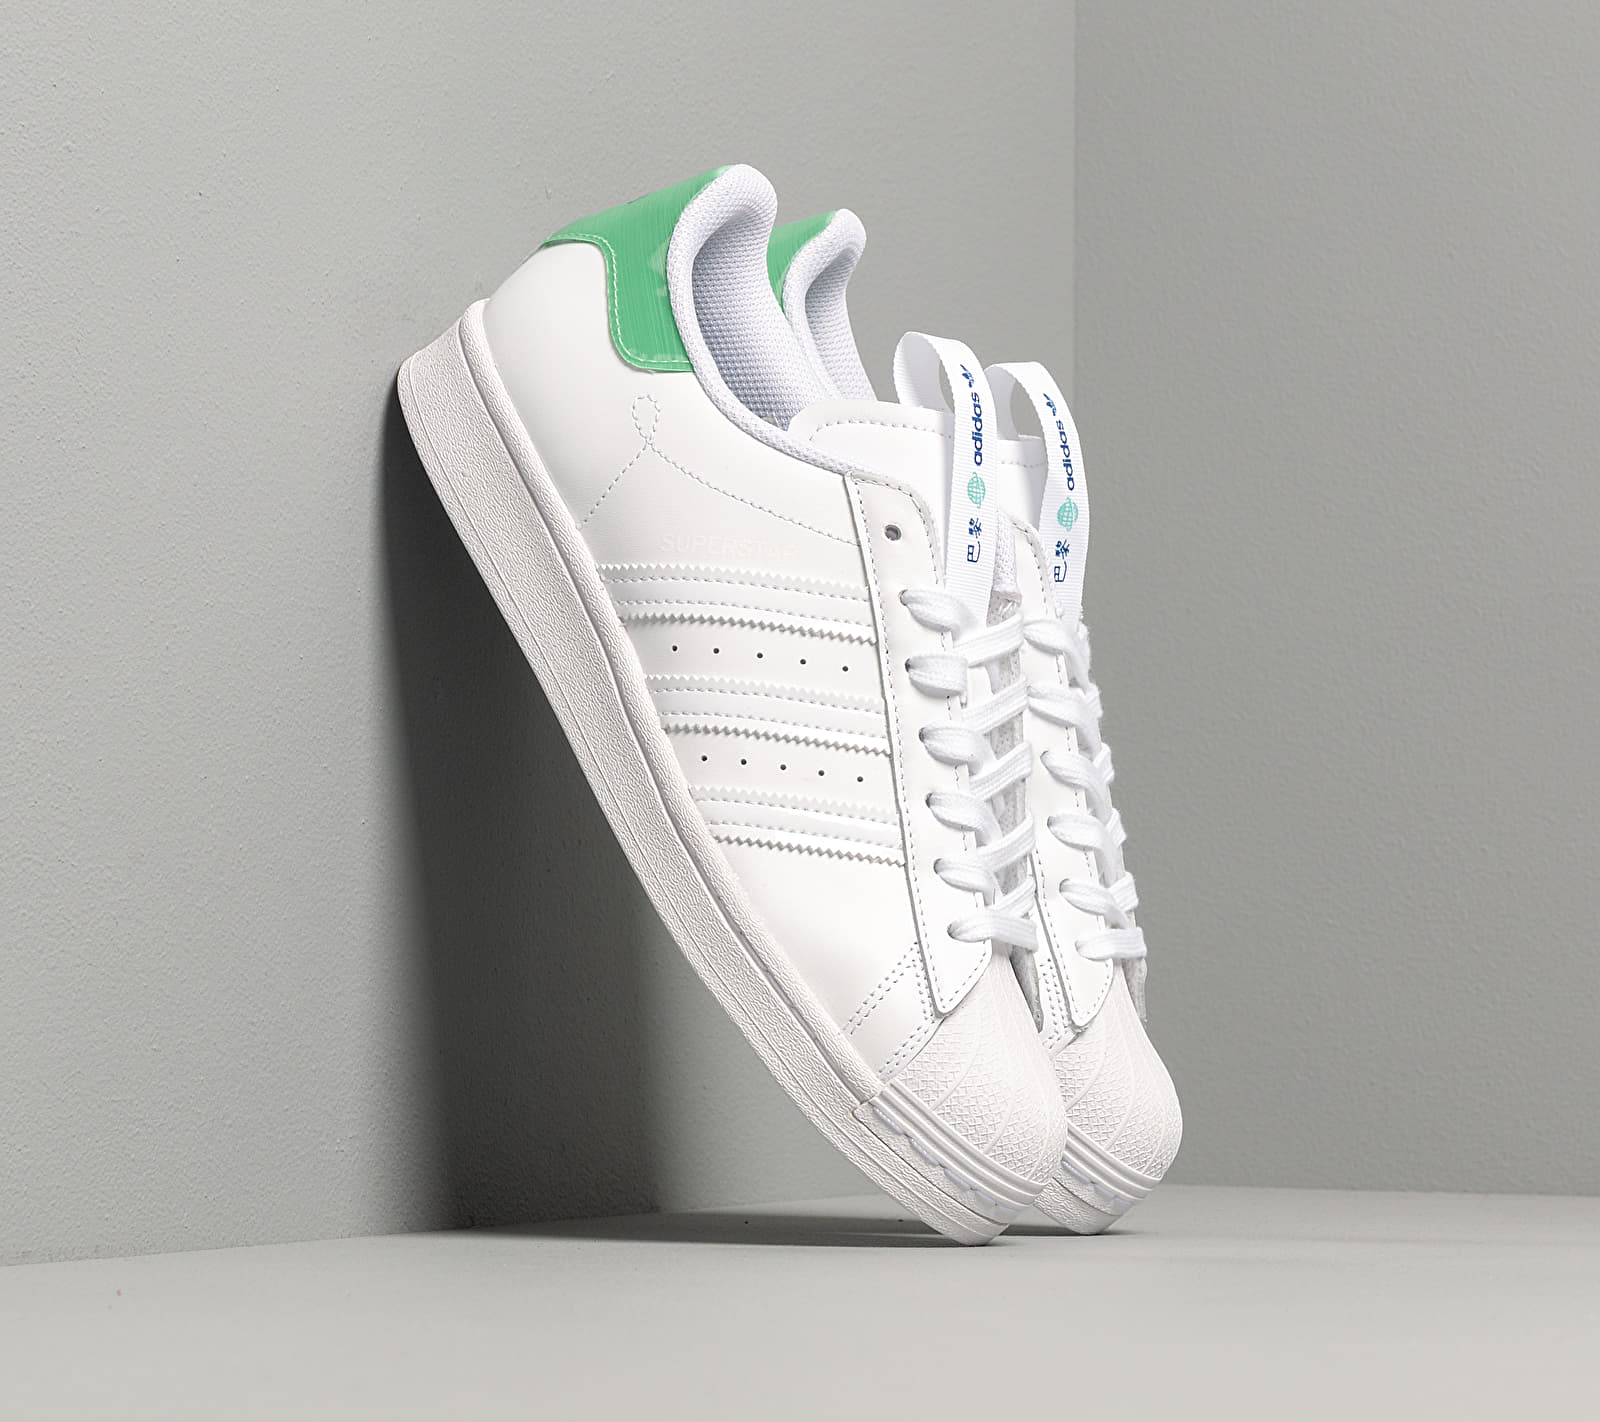 adidas Superstar Ftwr White/ Prism Mint/ Collegiate Royal EUR 40